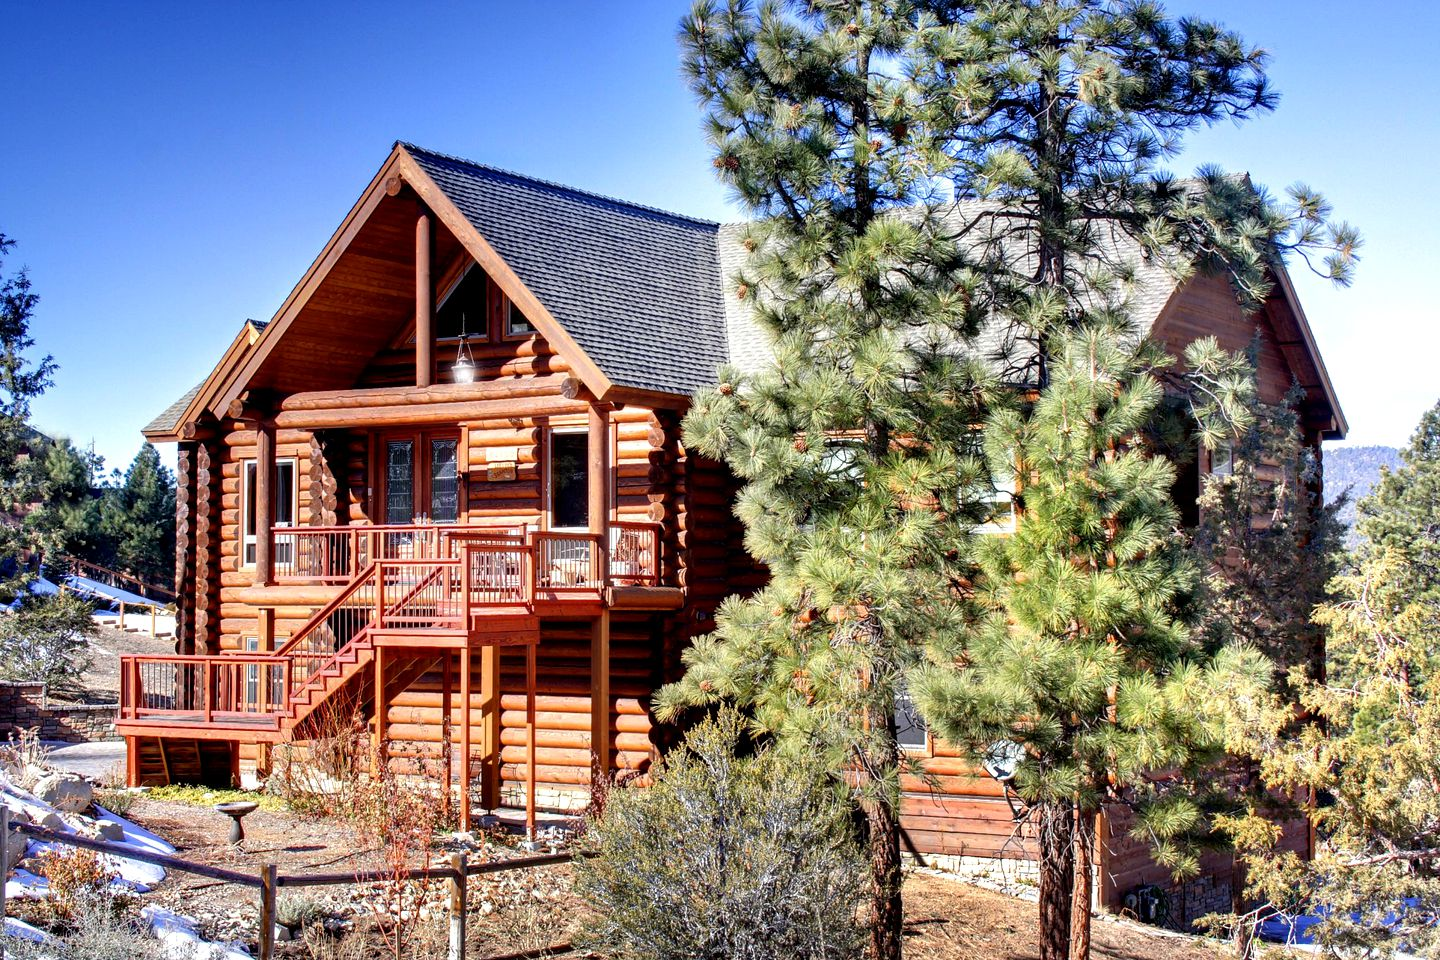 Log Cabins (Big Bear City, California, United States)